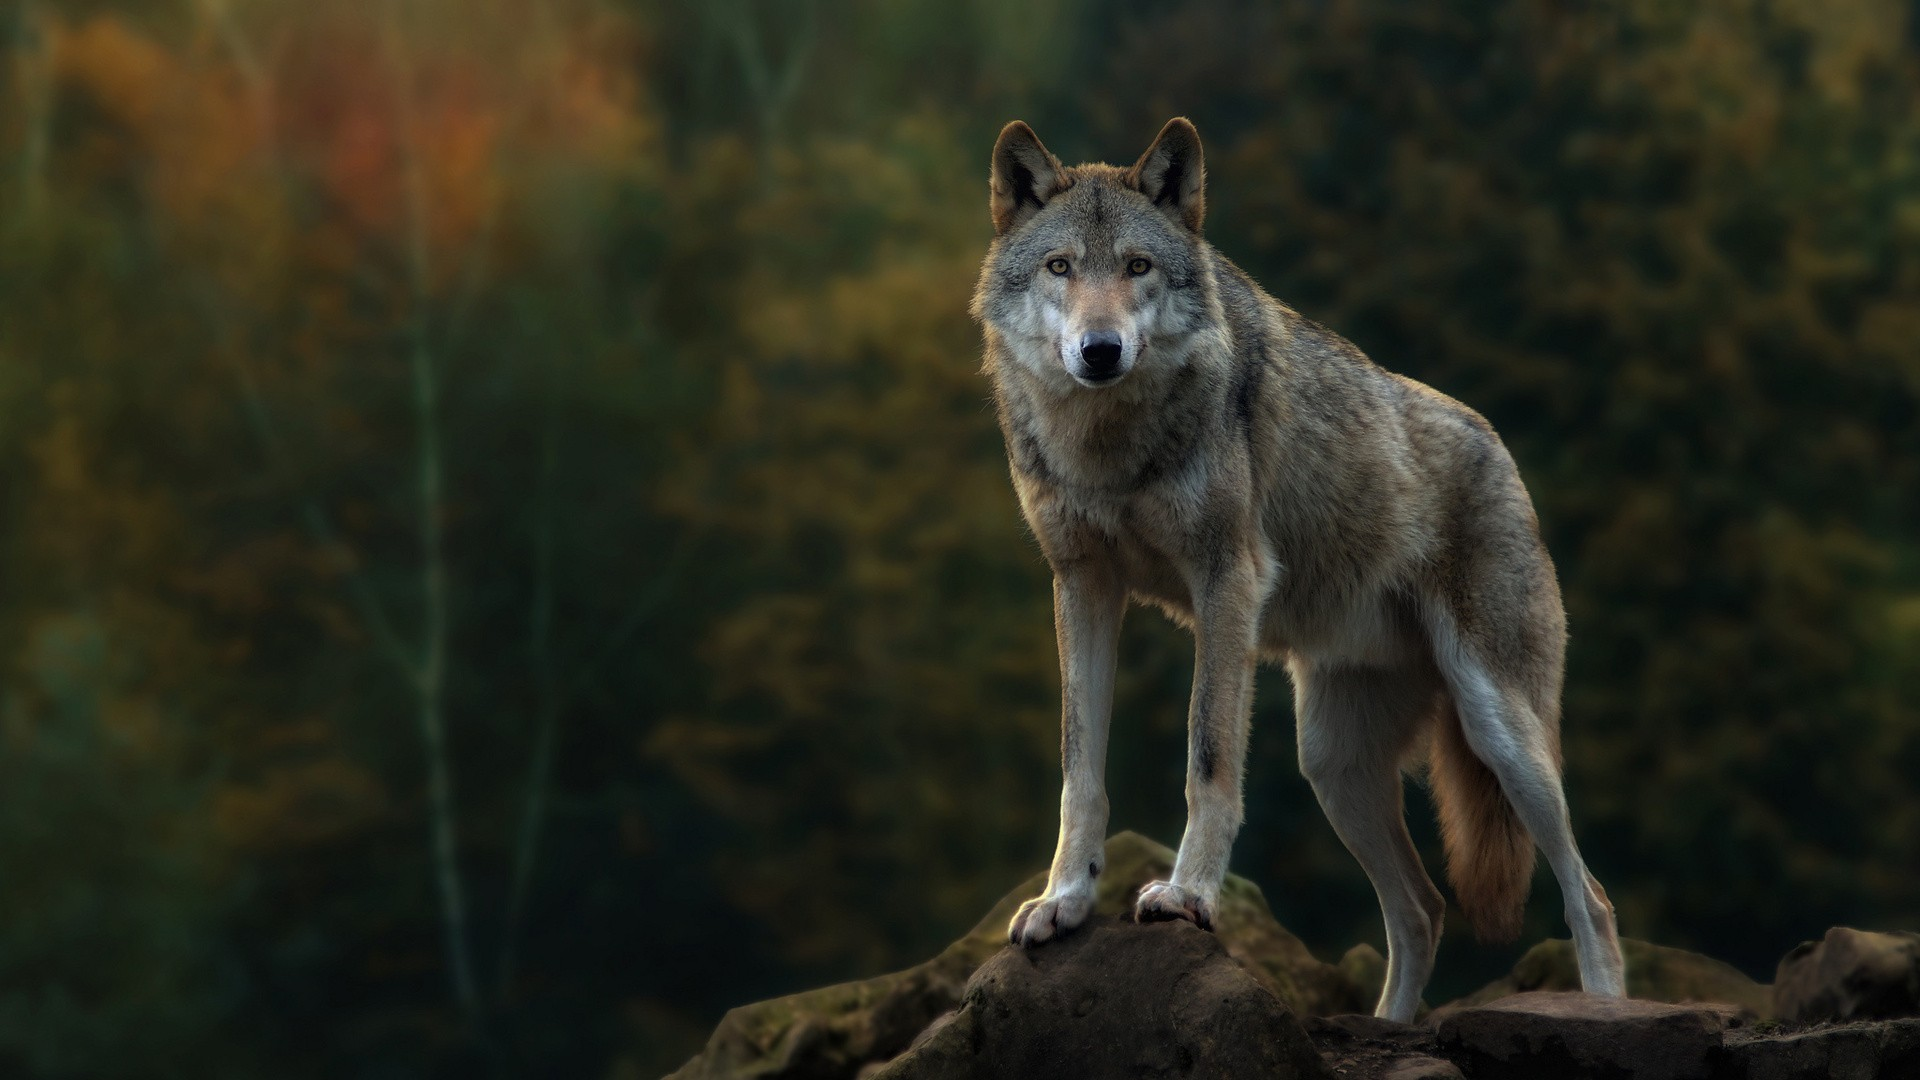 Hd Wolf Backgrounds: Gray Wolf HD Wallpaper